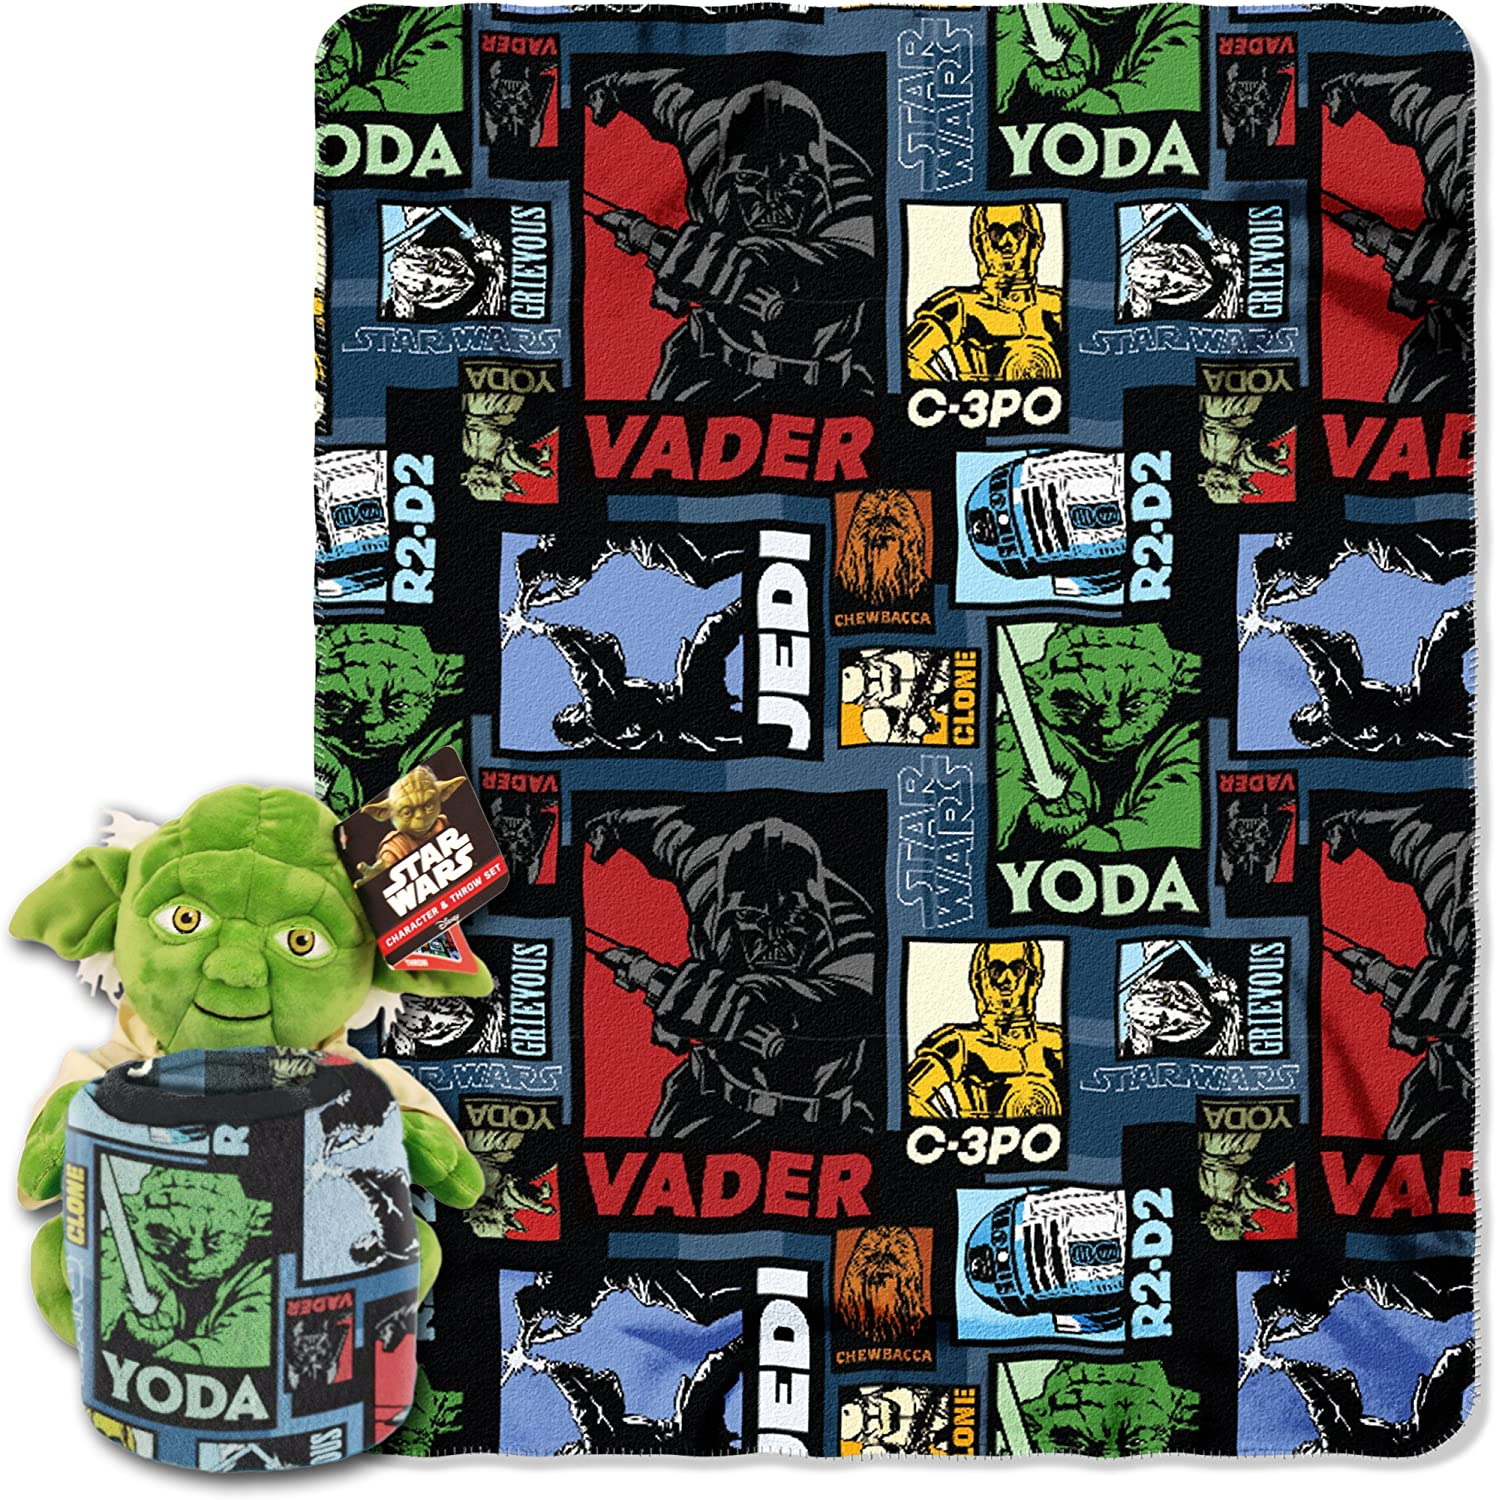 """Disney Star Wars, """"Yoda Story"""" Character Pillow and Fleece Throw Blanket Set, 40"""" x 50"""", Multi Color"""